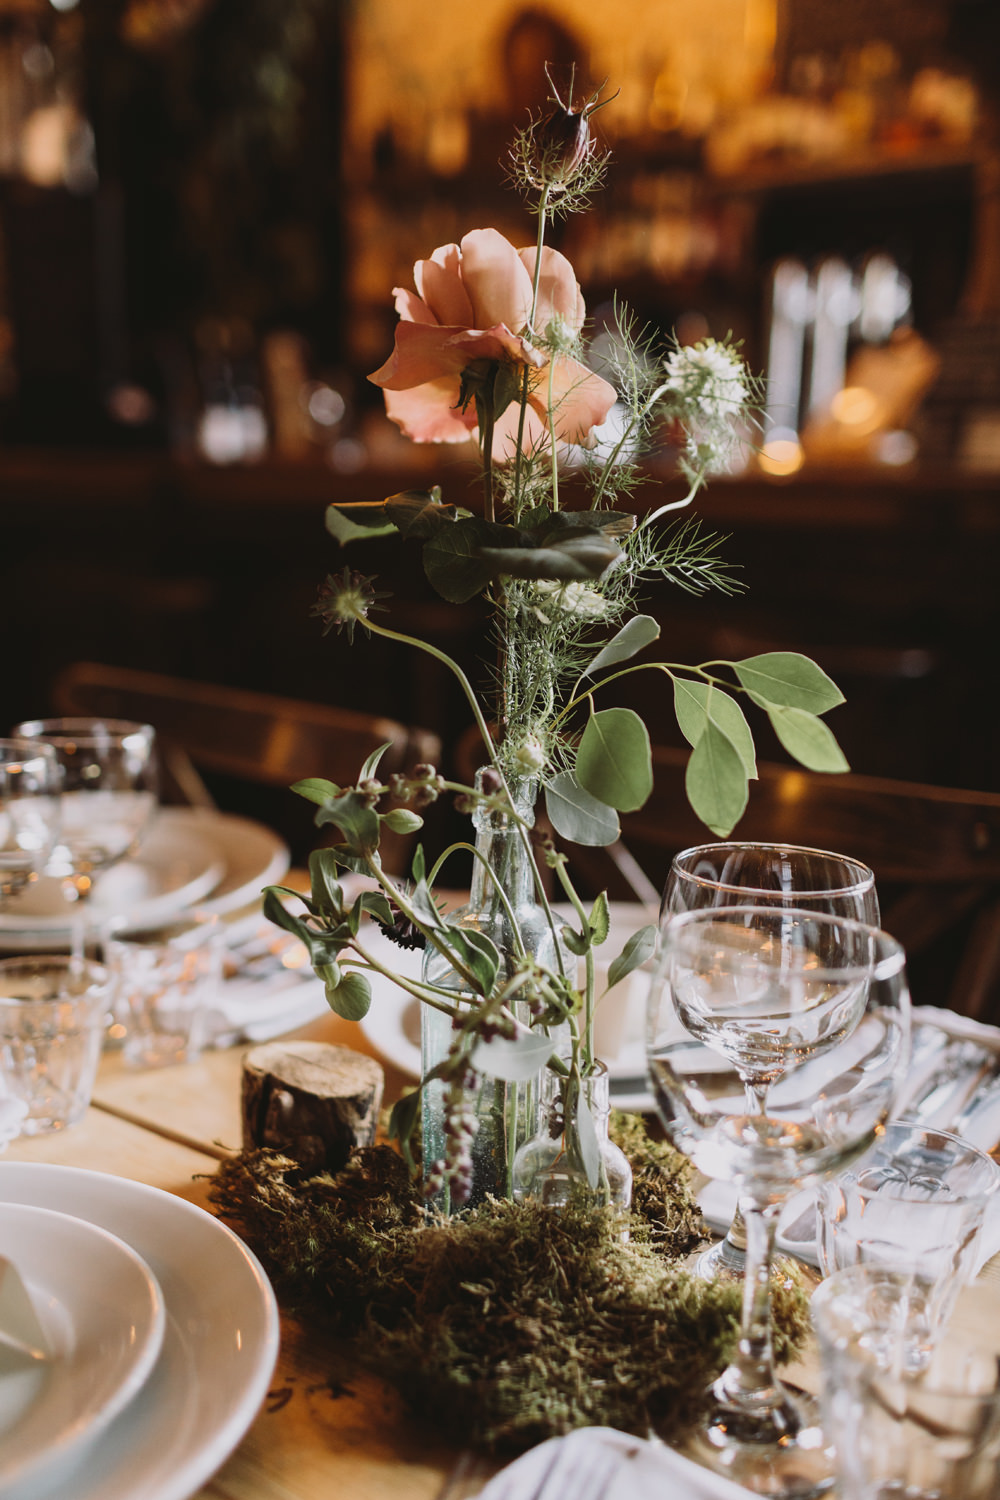 Table Centre Bottle Flowers Floral Greenery Moss Tram House Wedding Luke Hayden Photography